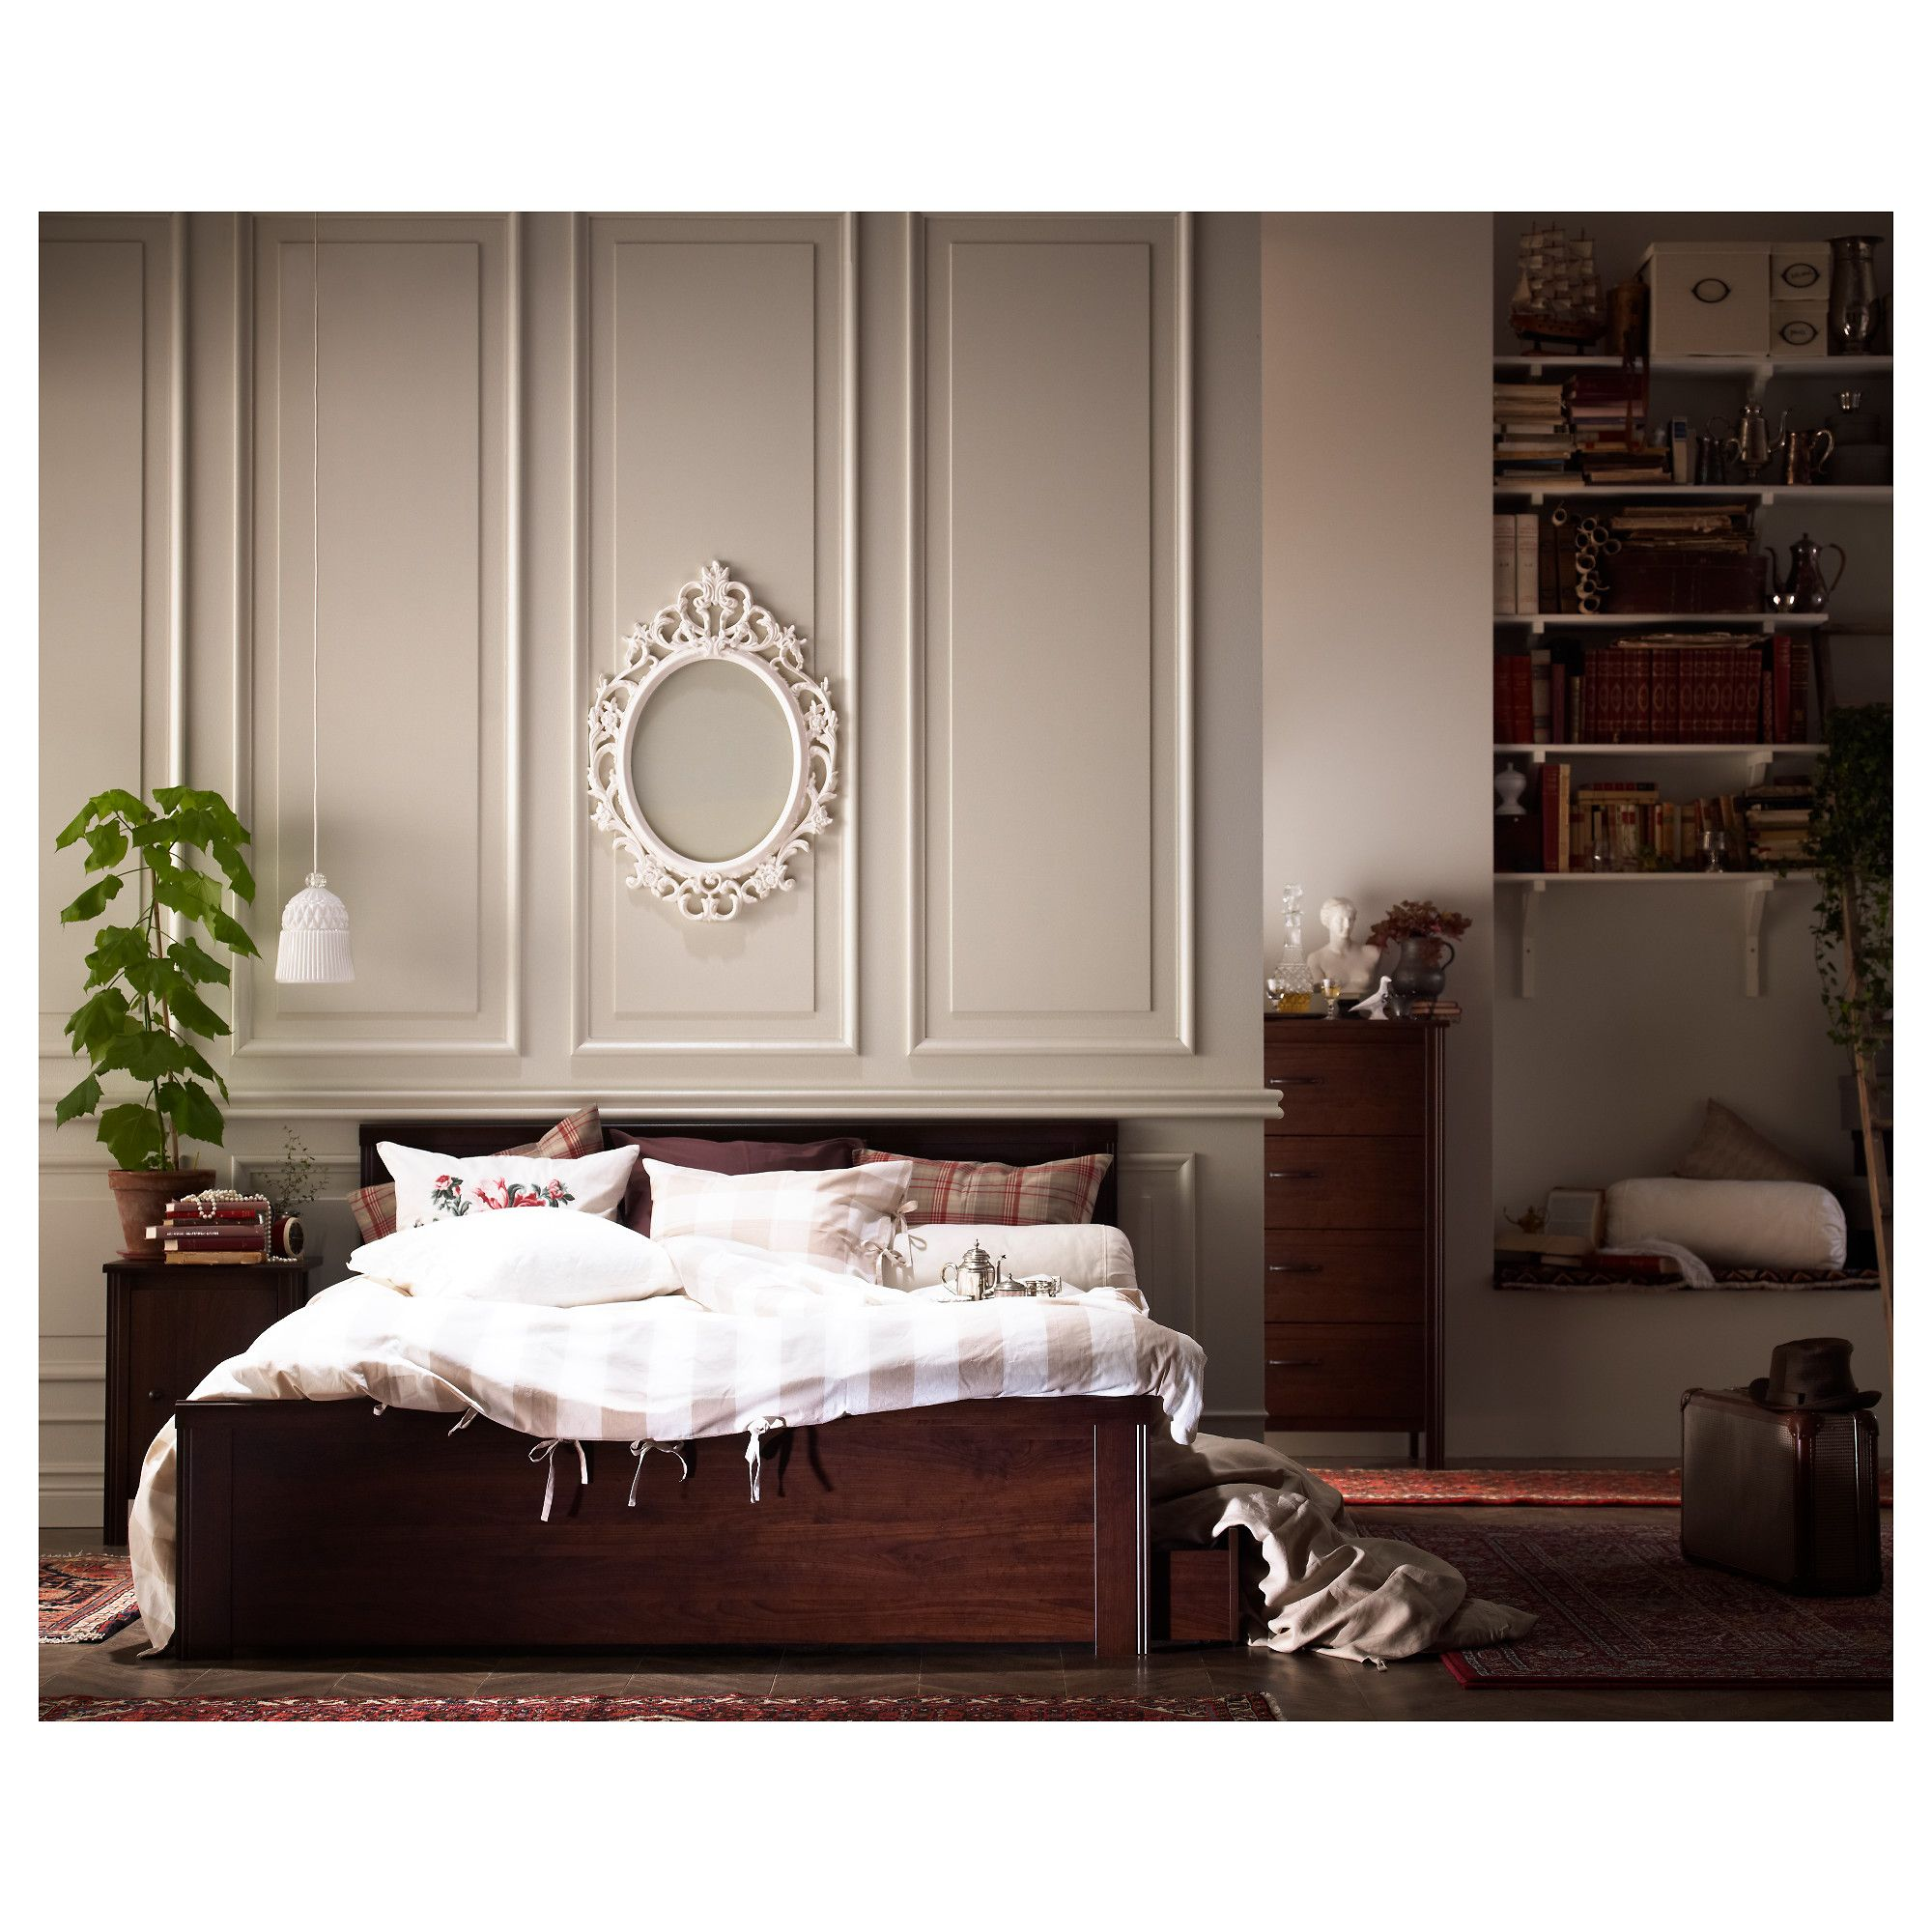 Furniture And Home Furnishings Ikea Bed Bed Frame Bedroom Trends